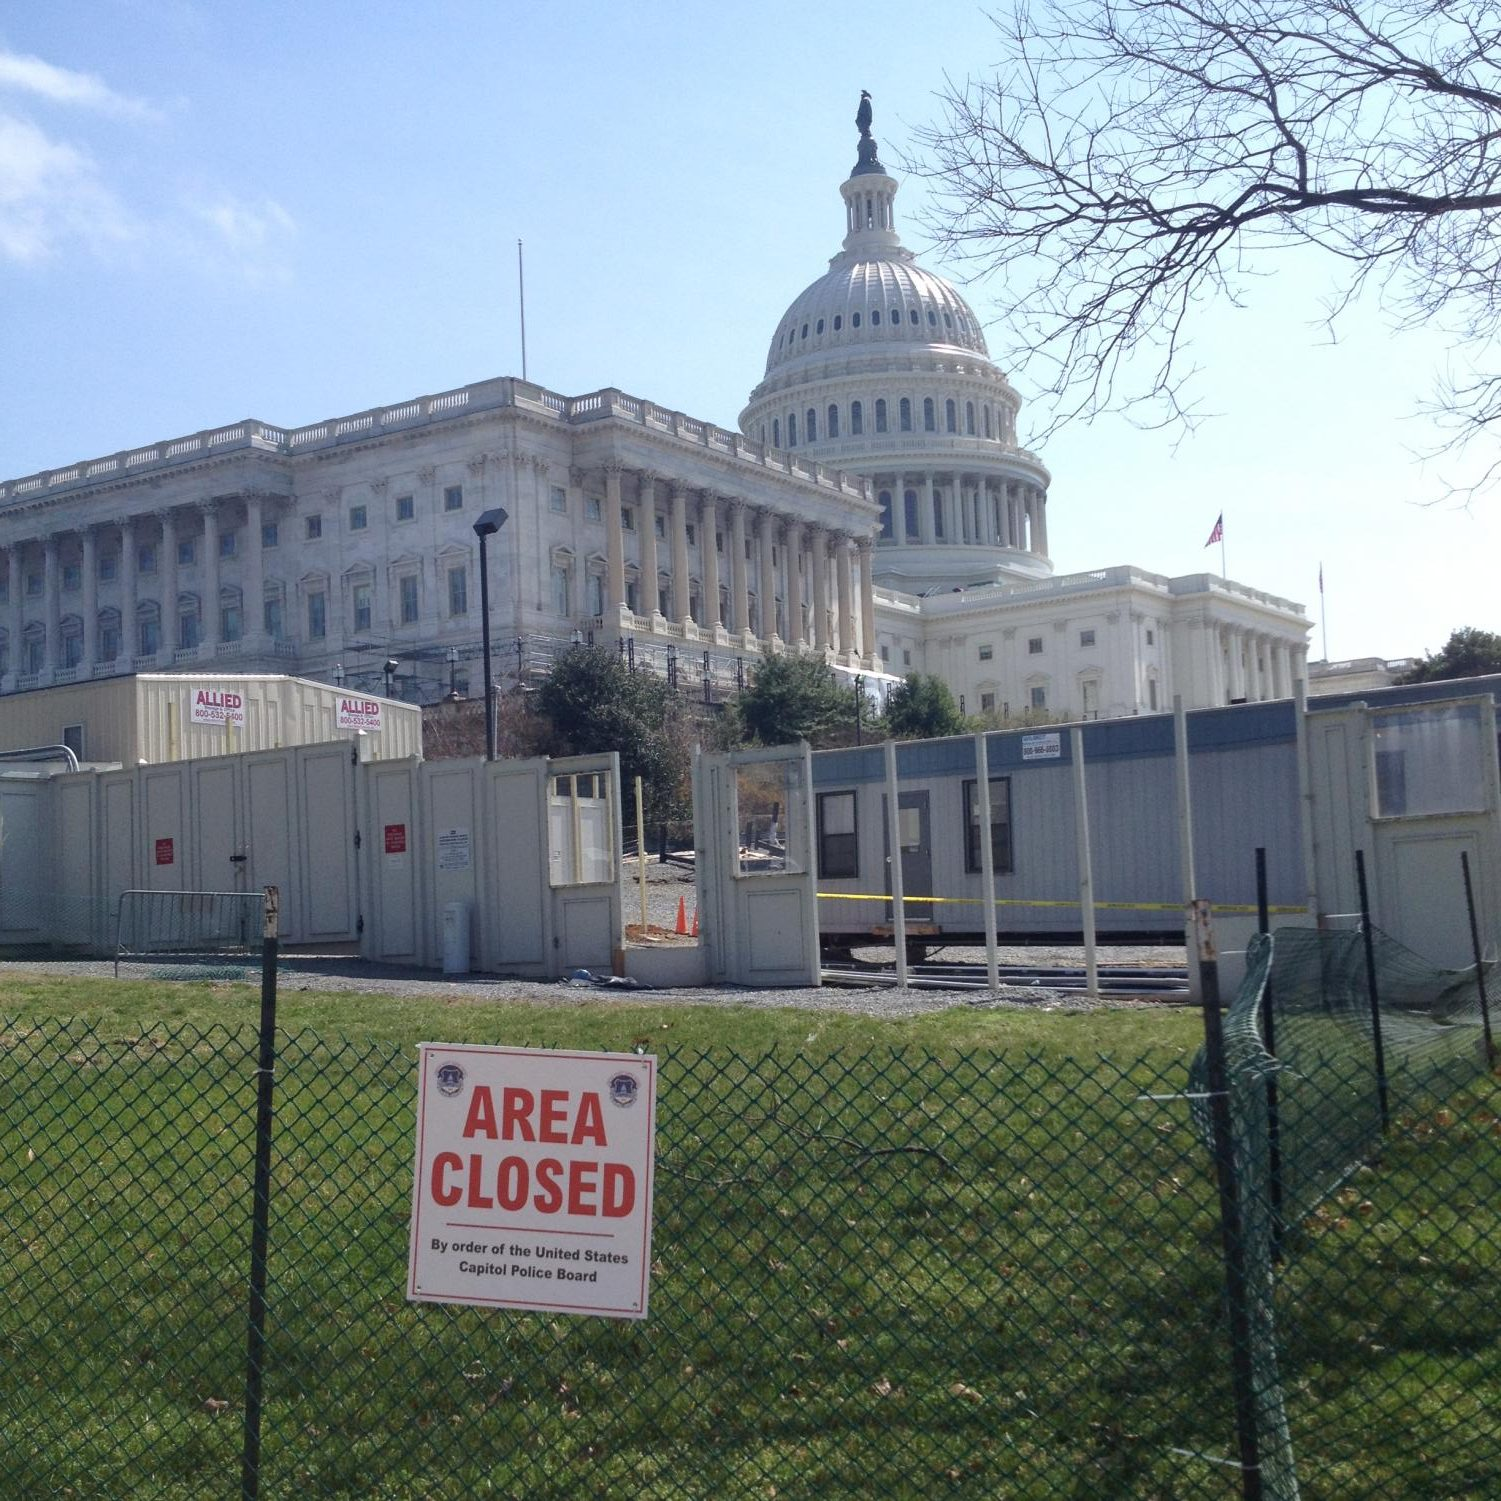 As the government shutdown stretches on, many of the departments are stopping operations or even temporarily closing.